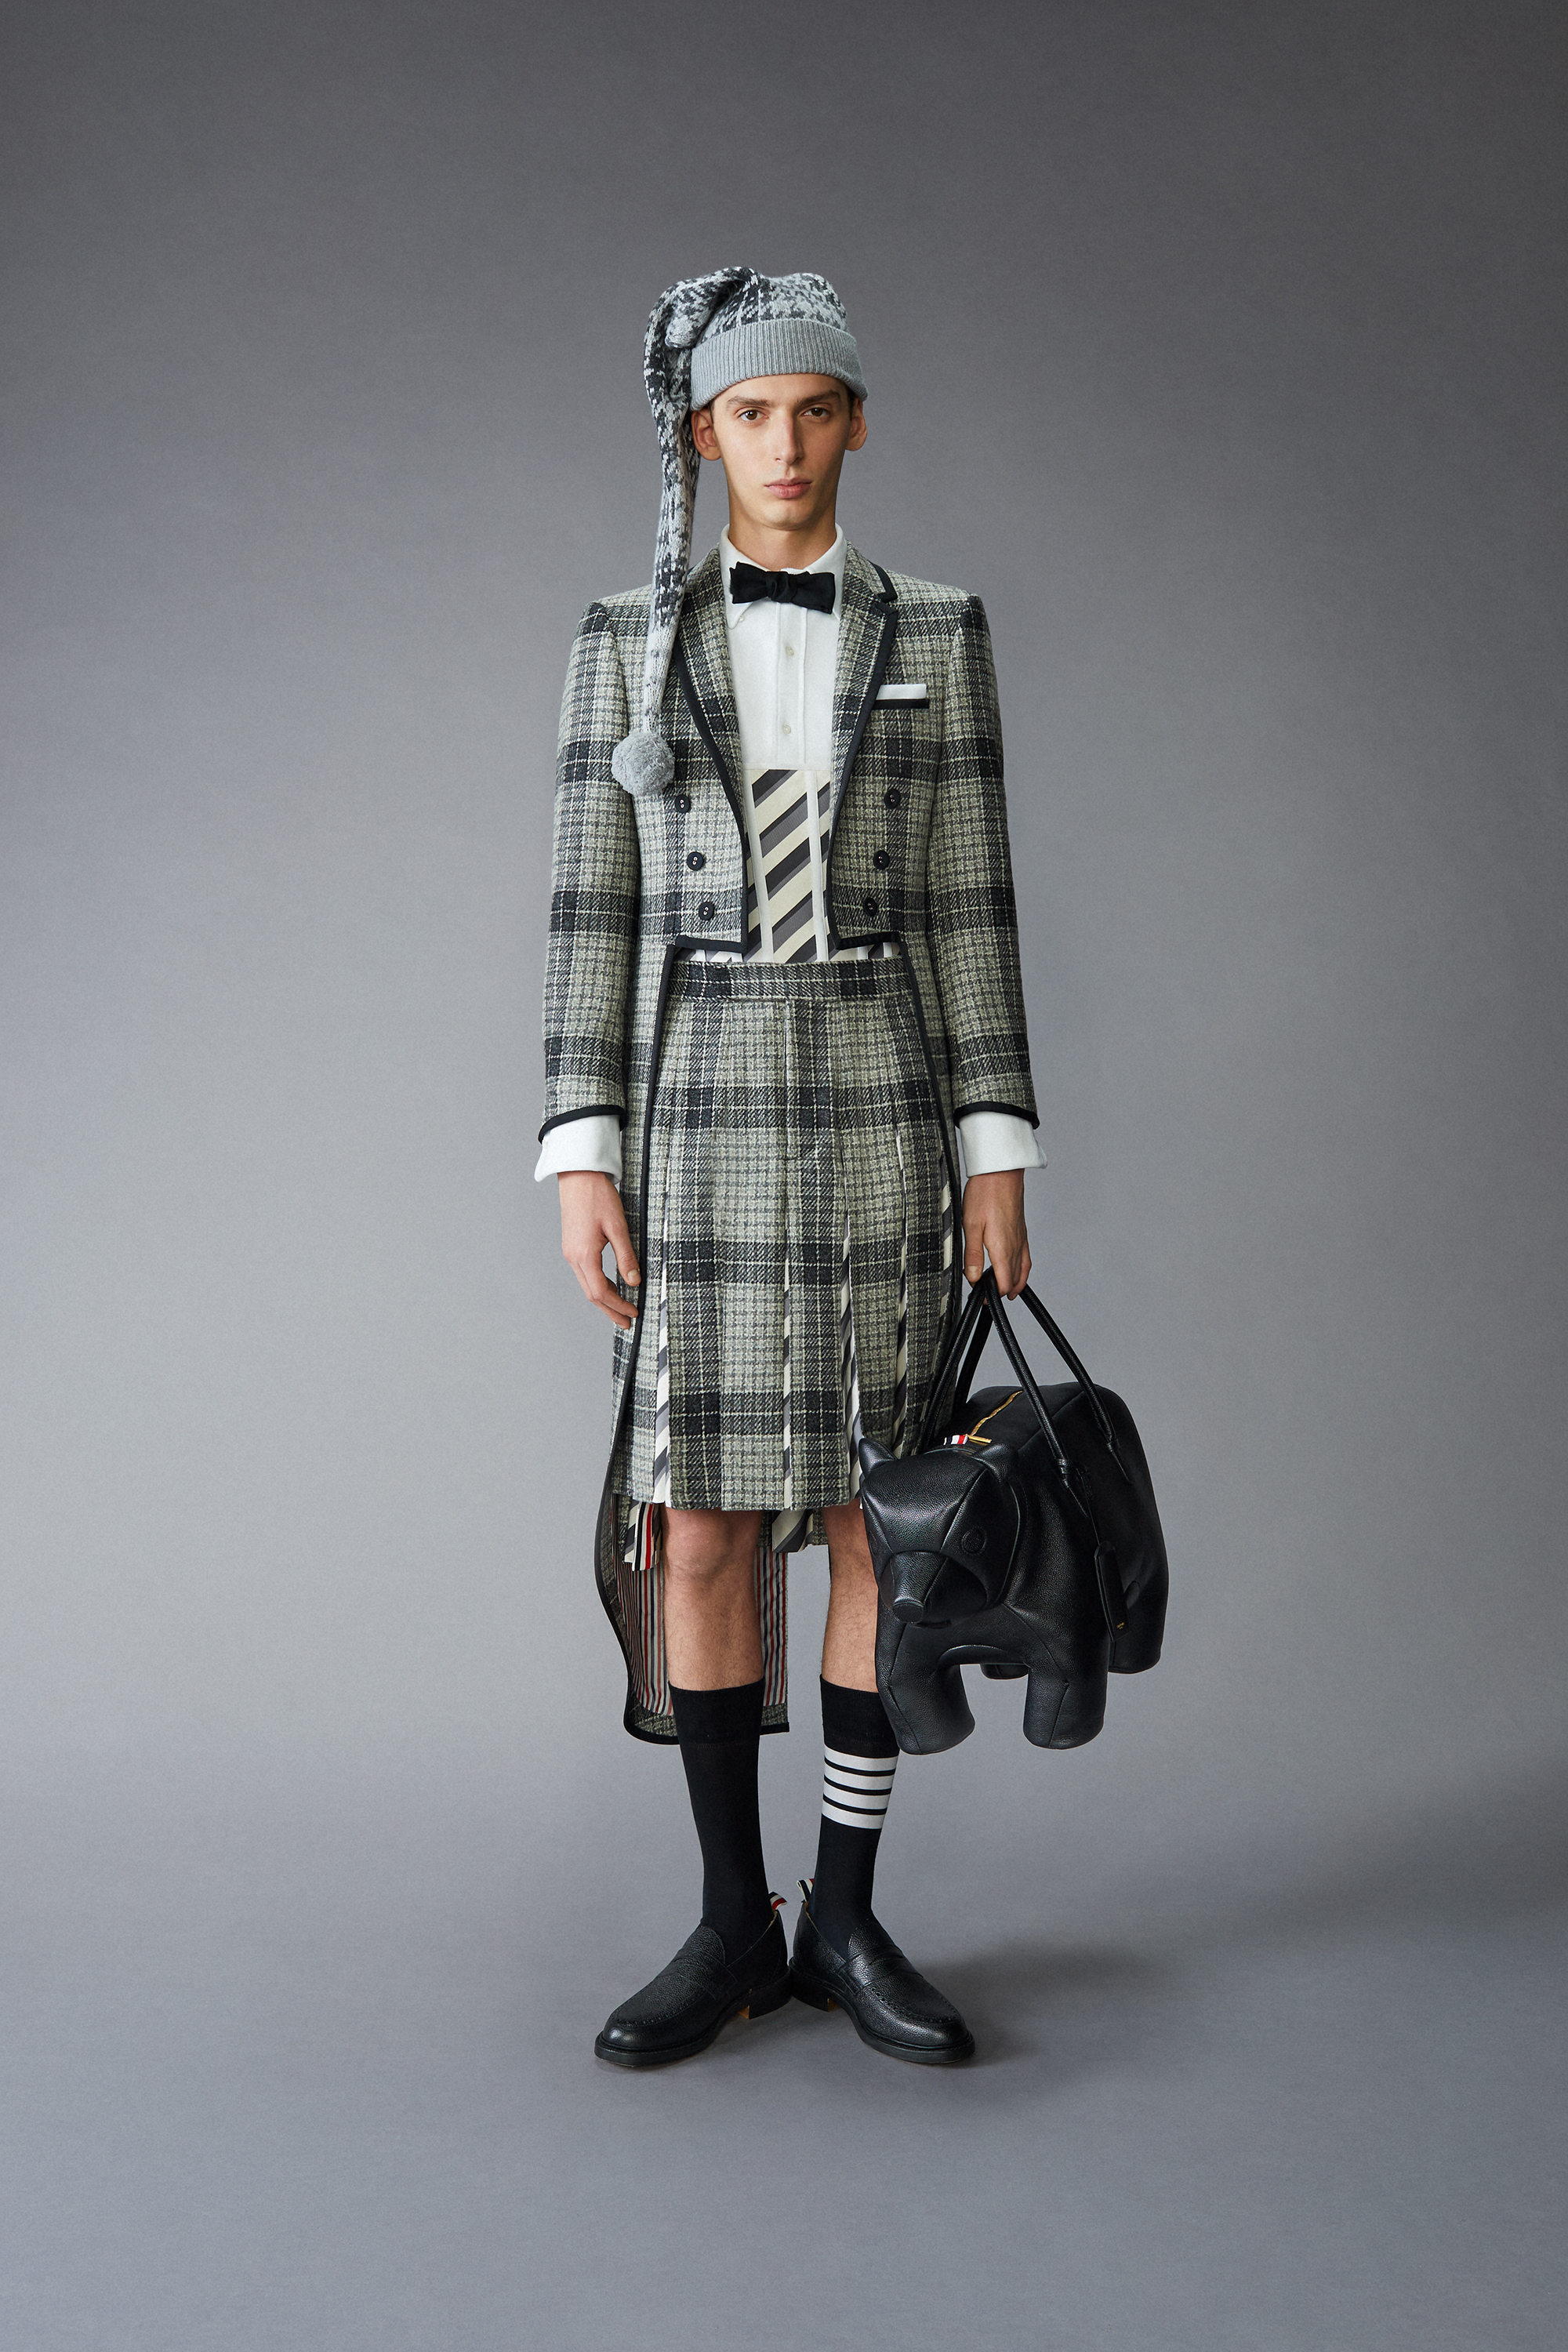 Thom Browne Men's Pre-Fall 2021